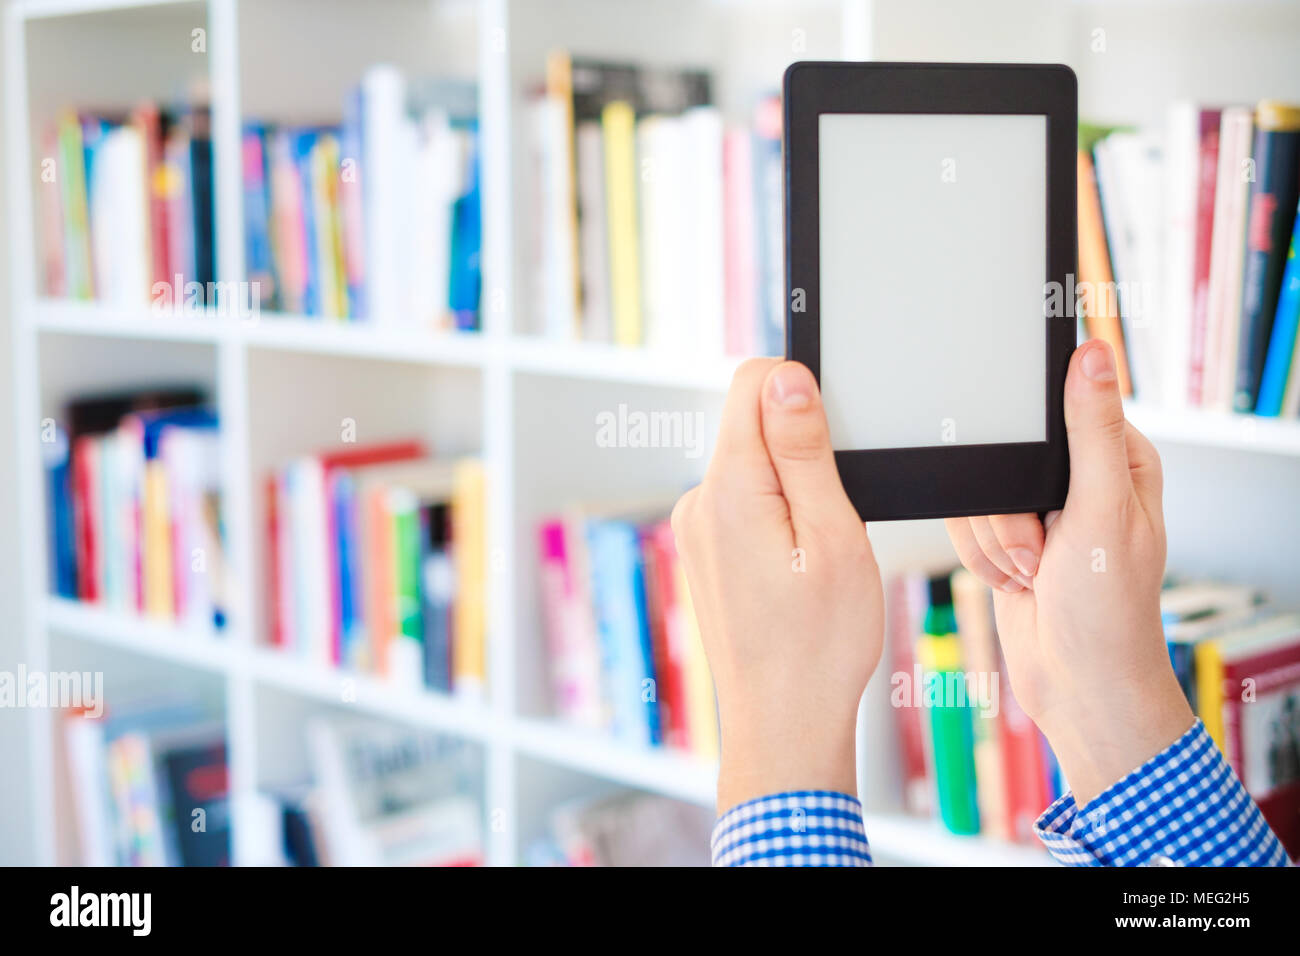 Choosing a buying book and internet book store concept - Stock Image